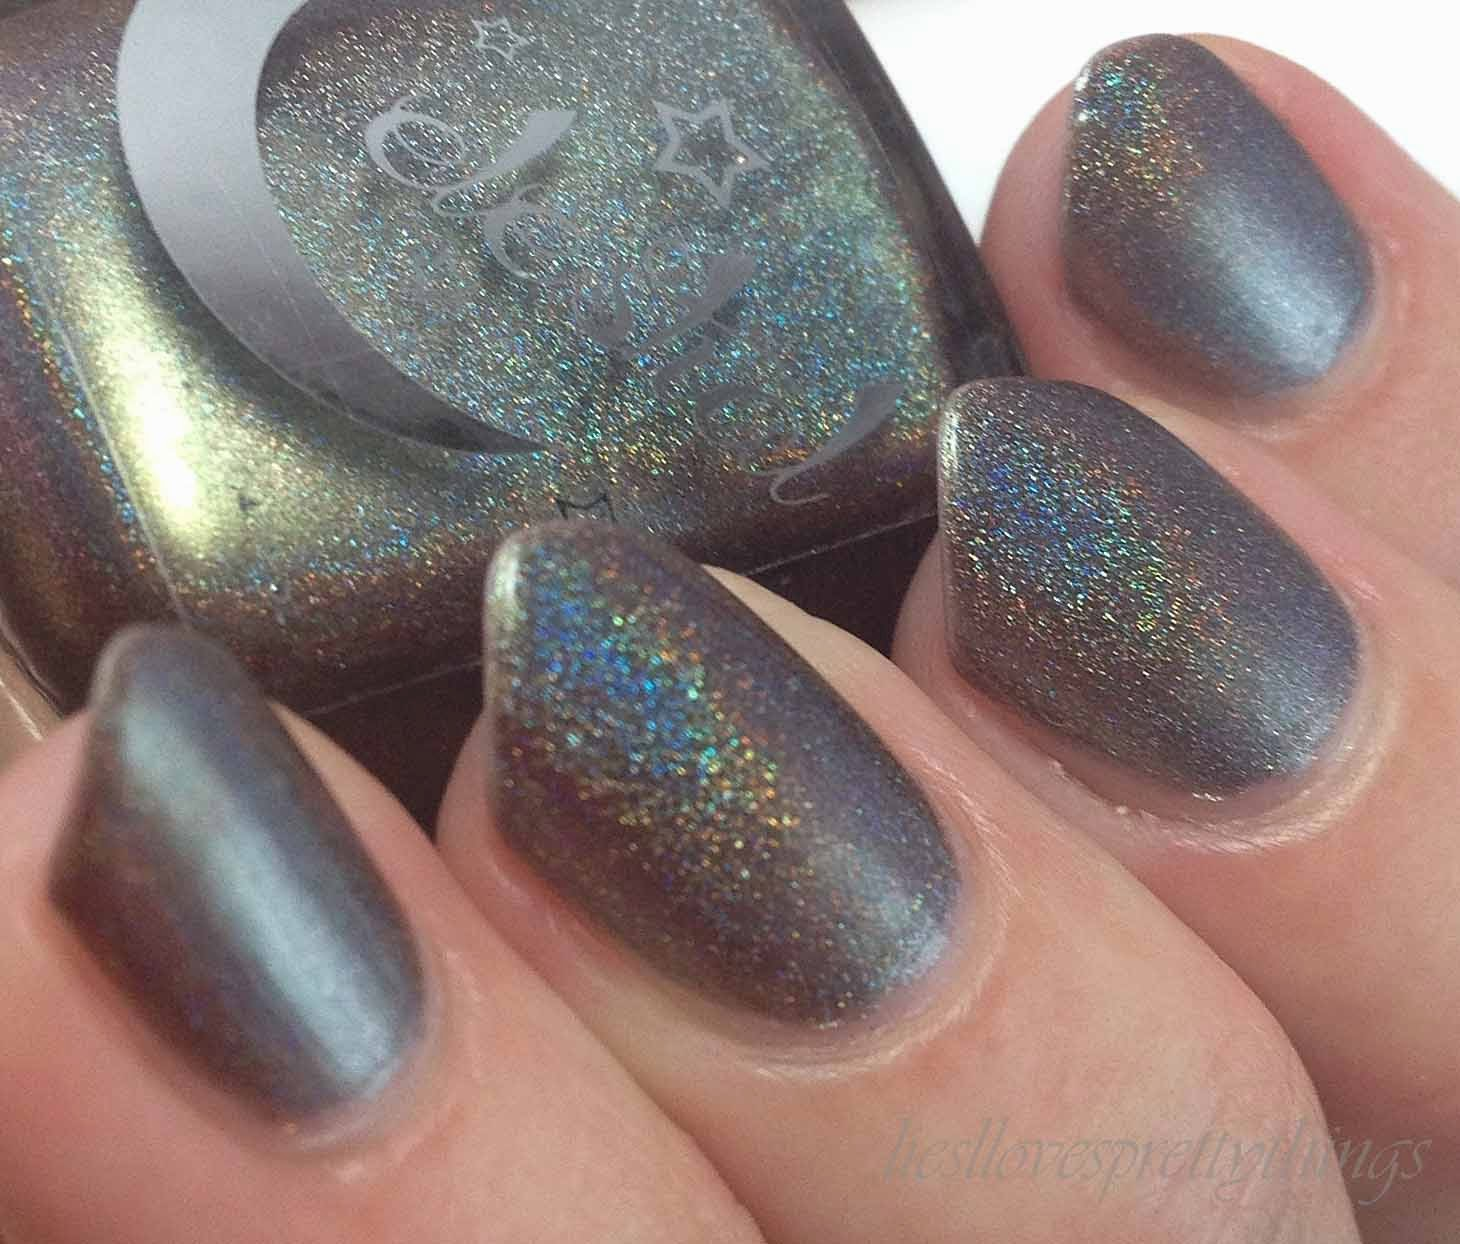 Celestial Cosmetics Meteoroid swatch and review